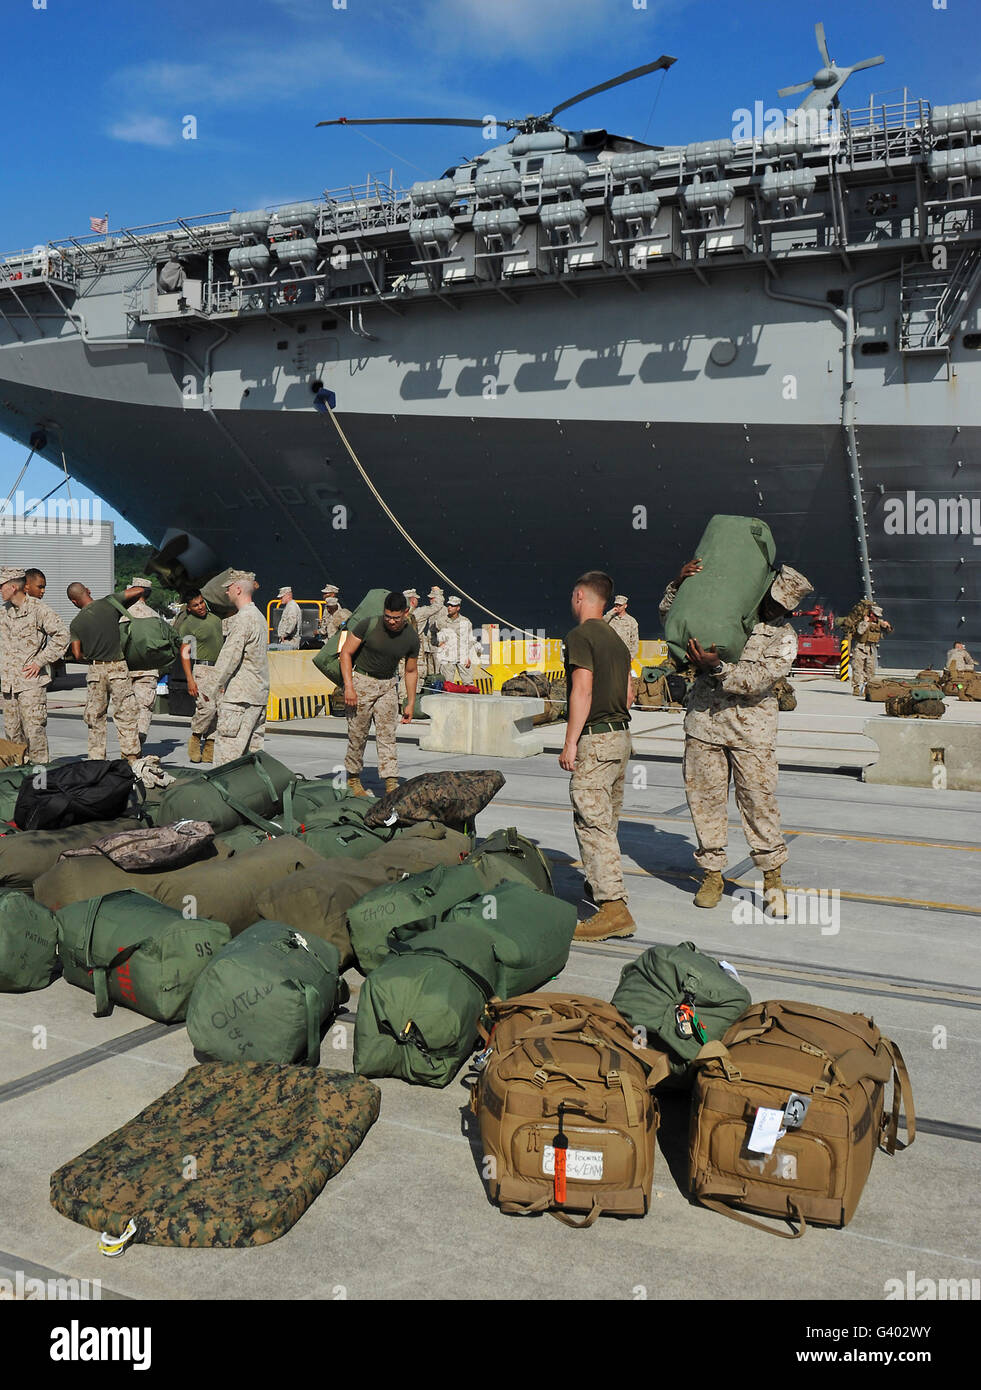 Marines move gear during an embarkation aboard USS Bonhomme Richard. - Stock Image